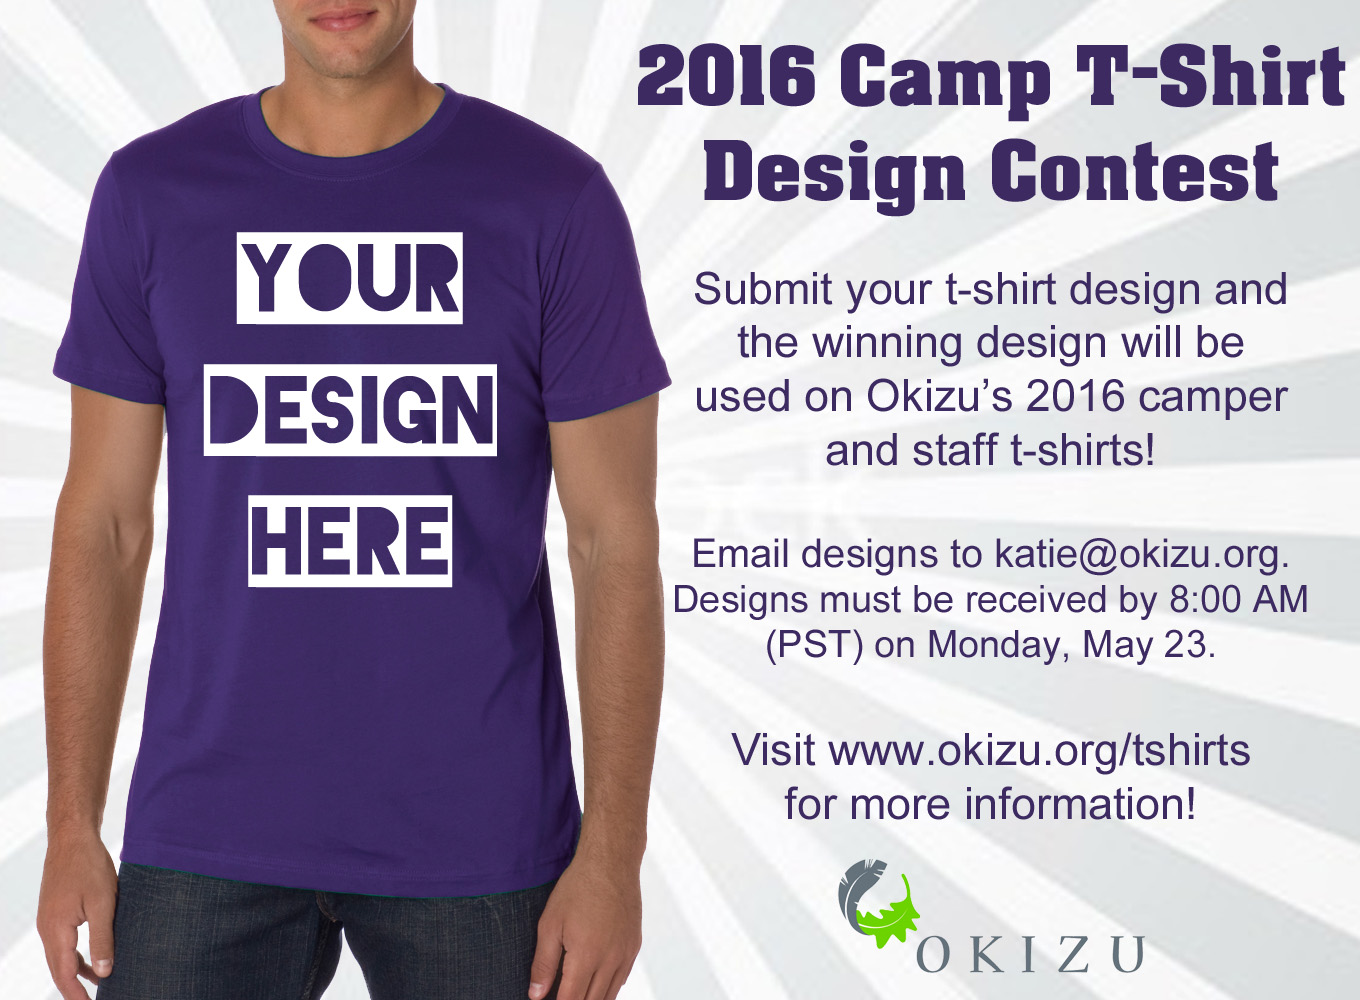 Winning T Shirt Designs | 2016 Camp T Shirt Design Contest Okizu